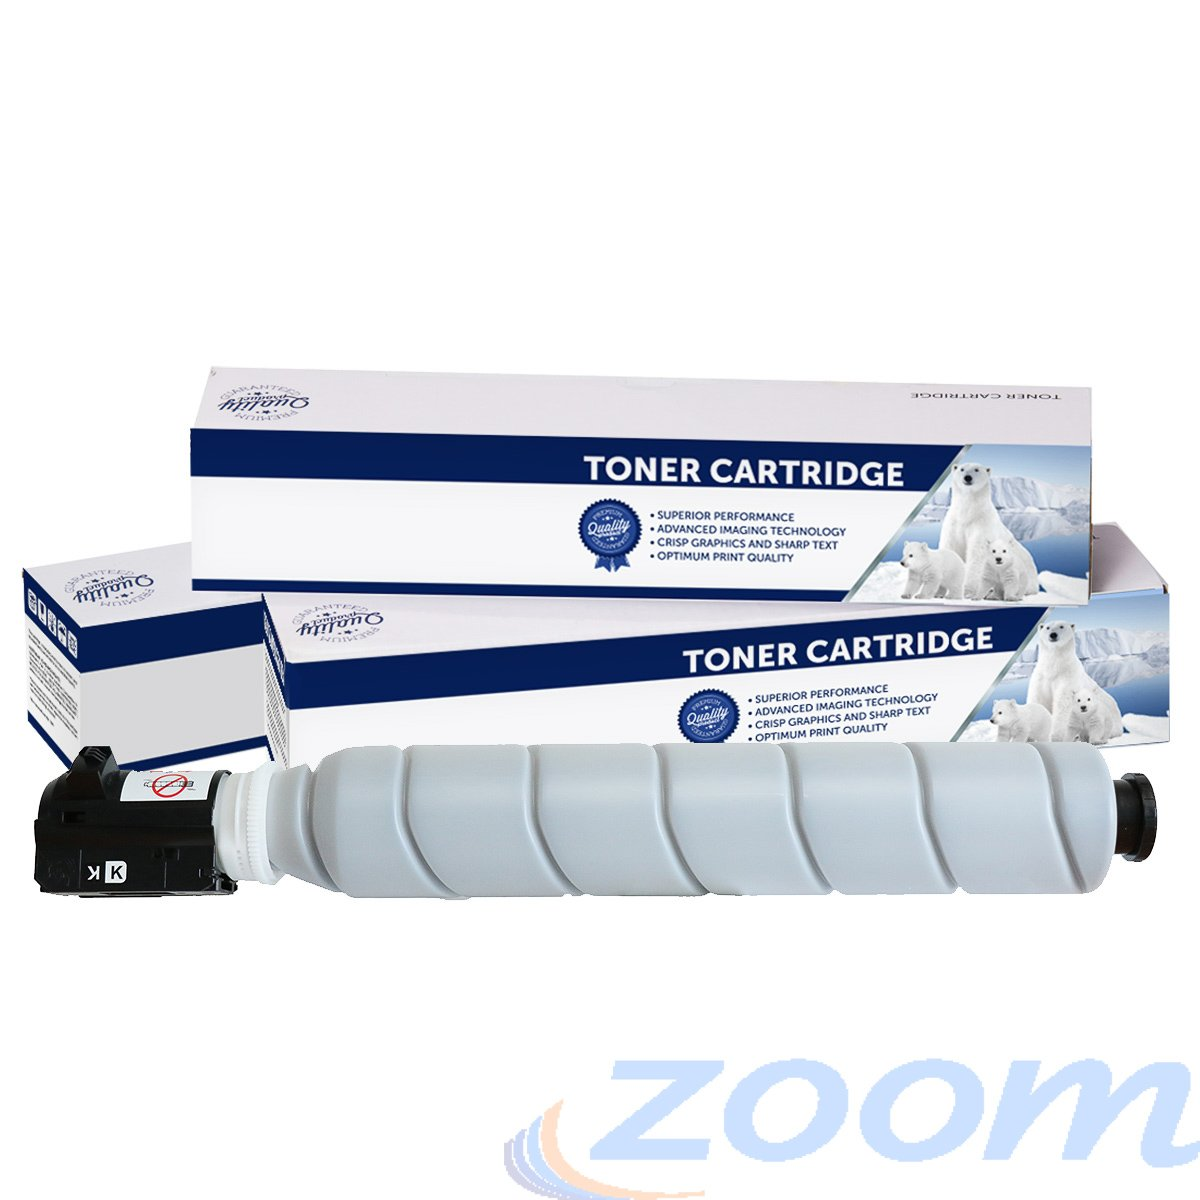 Canon TG67B Black Toner Cartridge